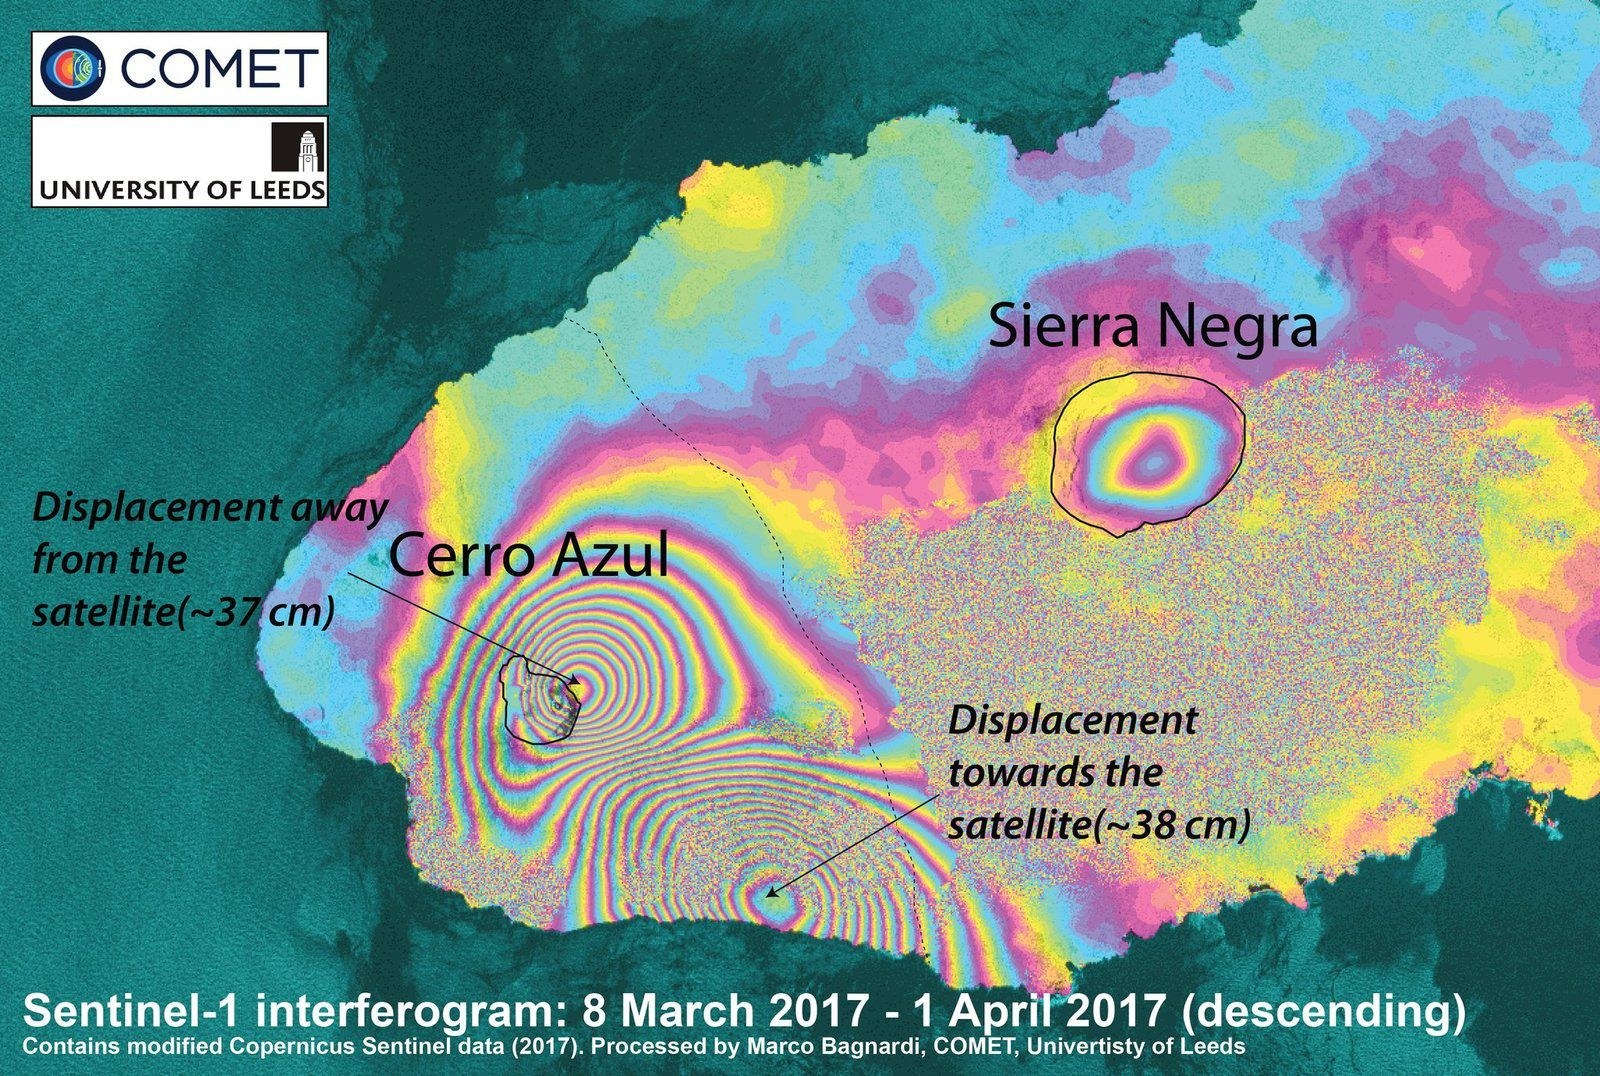 Cerro Azul / isabela island - radar interferogram between 8 March and 1 April 2017 - Doc Sentinel-1 / Comet / modified by Marco Bagnardi, University of Leeds.